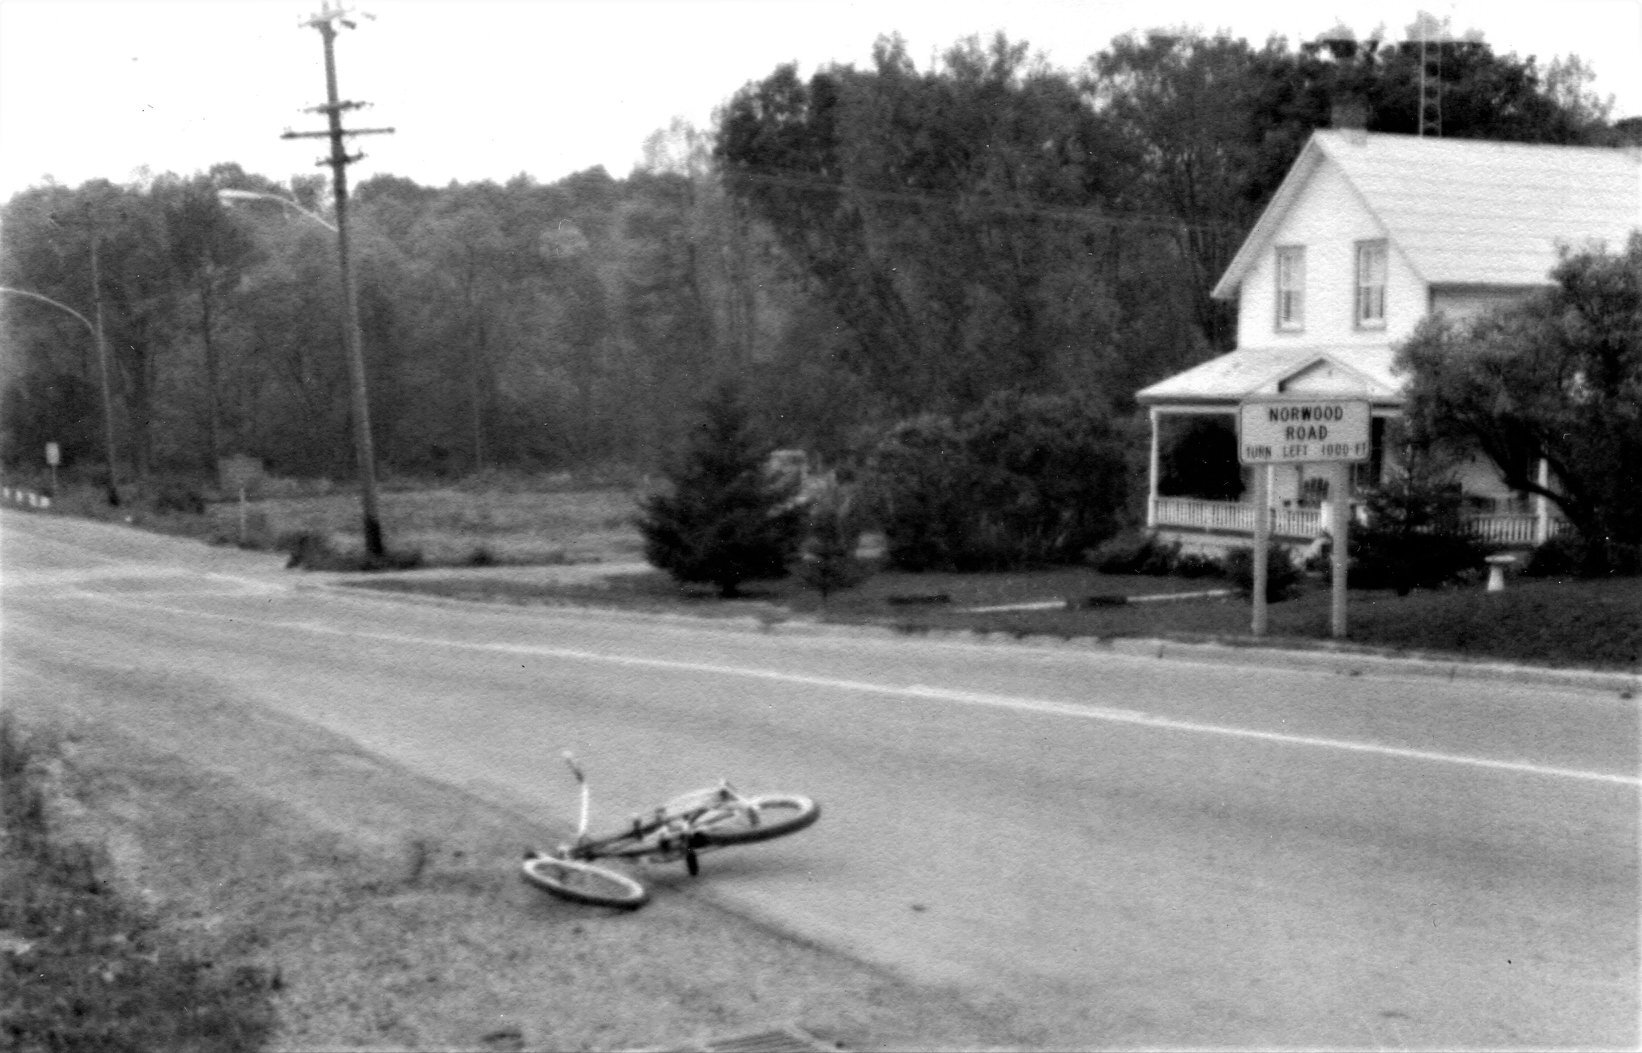 The warren house,  and site of the Thomas Empey's bike 1970 accident (now the location of Mac's convenience store